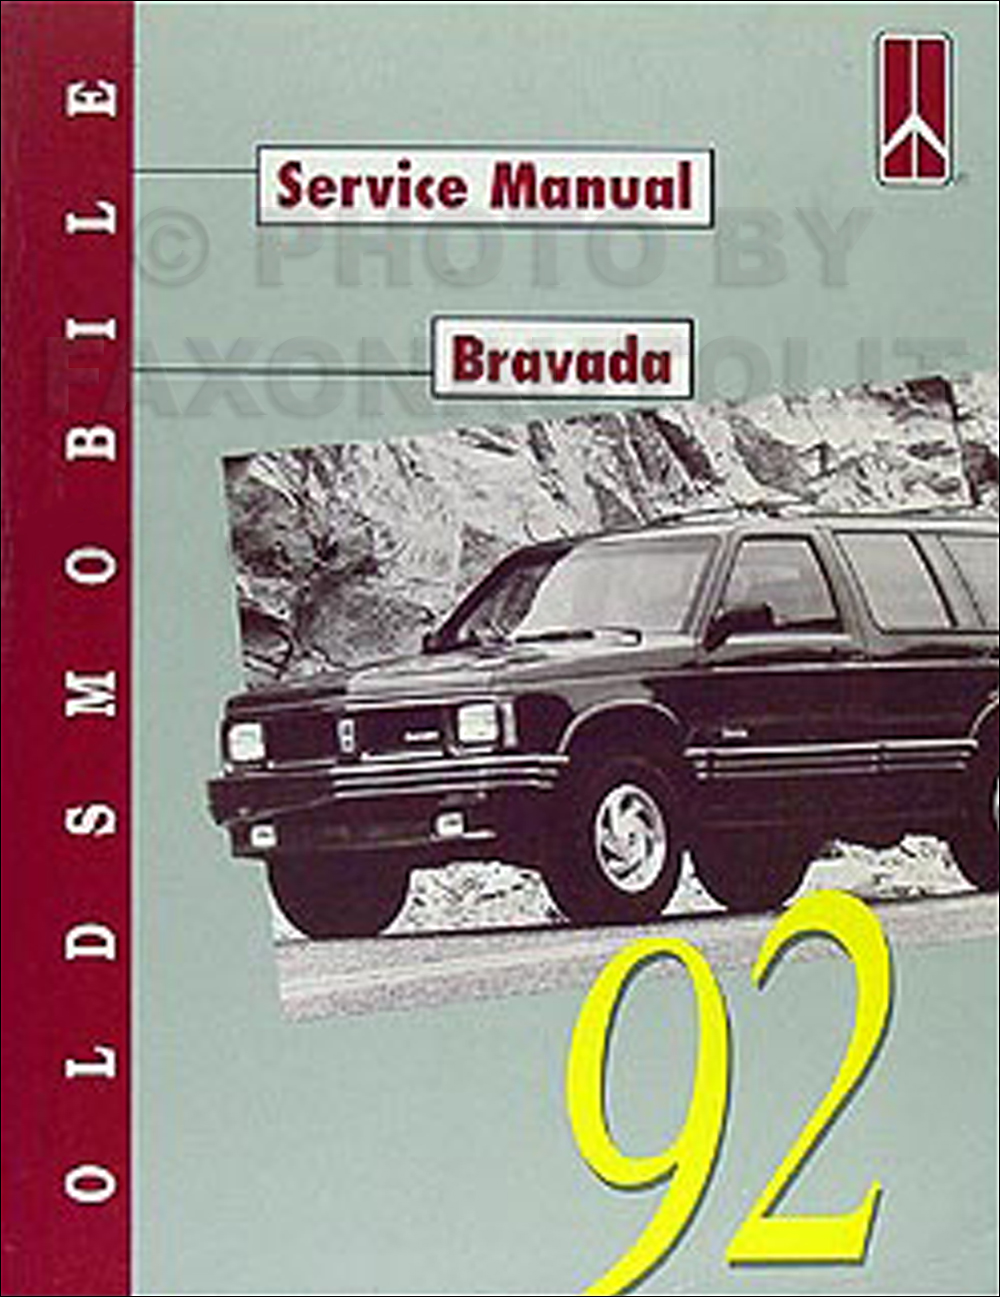 1992 Oldsmobile Bravada Repair Manual Original